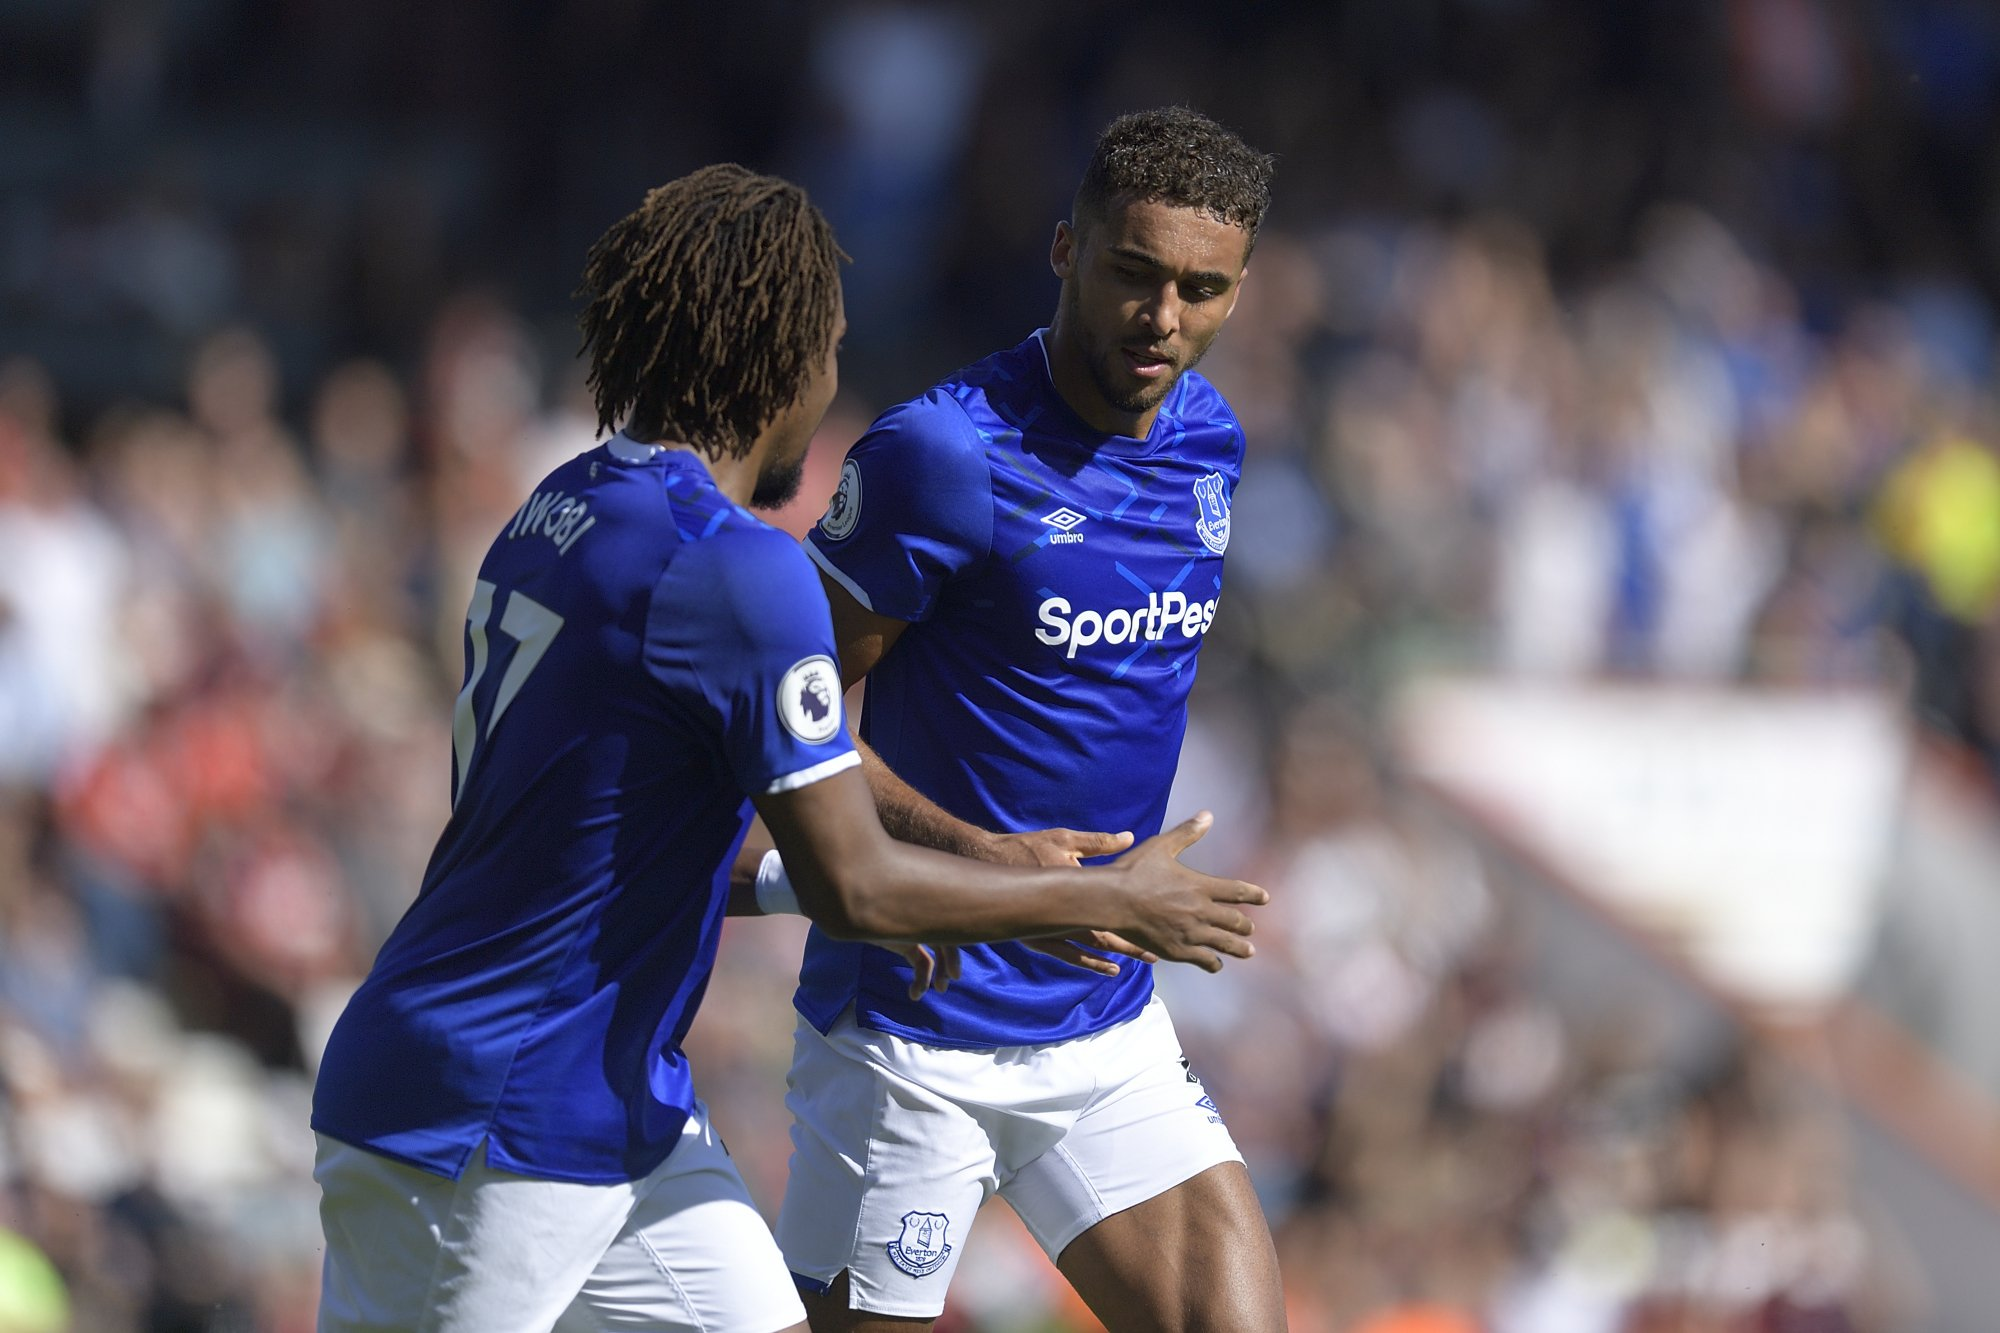 EPL: Iwobi In Action As Man City Edge Out Everton 3-1 At Goodison Park